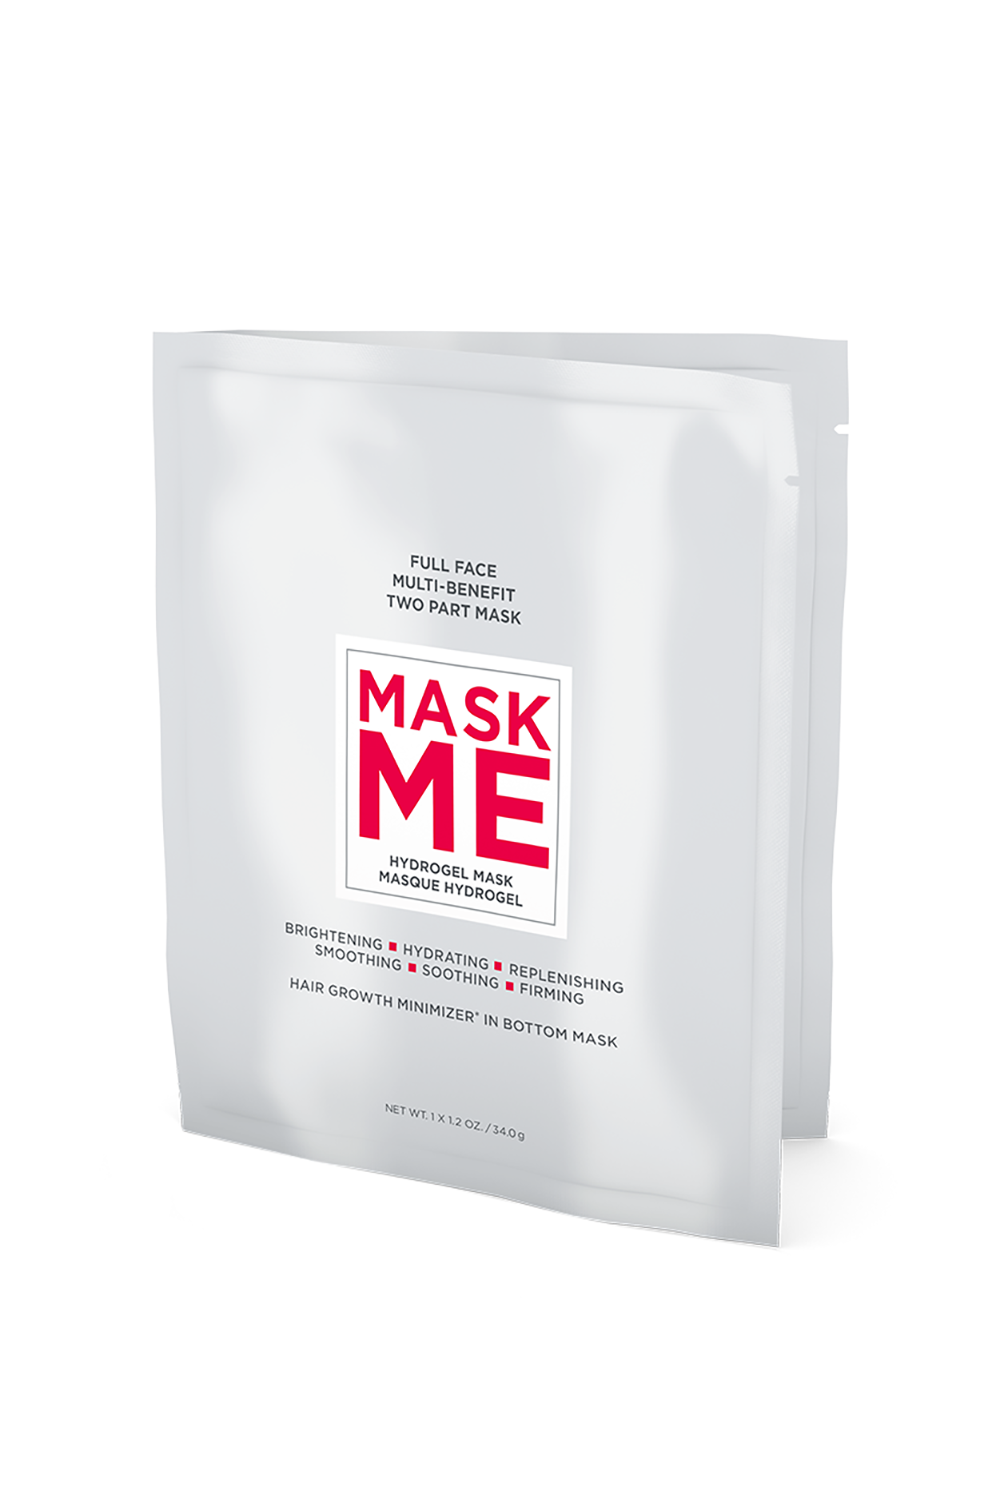 European Wax Center Mask Me Hydrogel Mask European Wax Center Mask Me Hydrogel Mask, $10 SHOP IT Bless! The bottom half of this two-part mask features a next-level, hair-minimizing technology that will keep those pesky stray hairs from showing up.